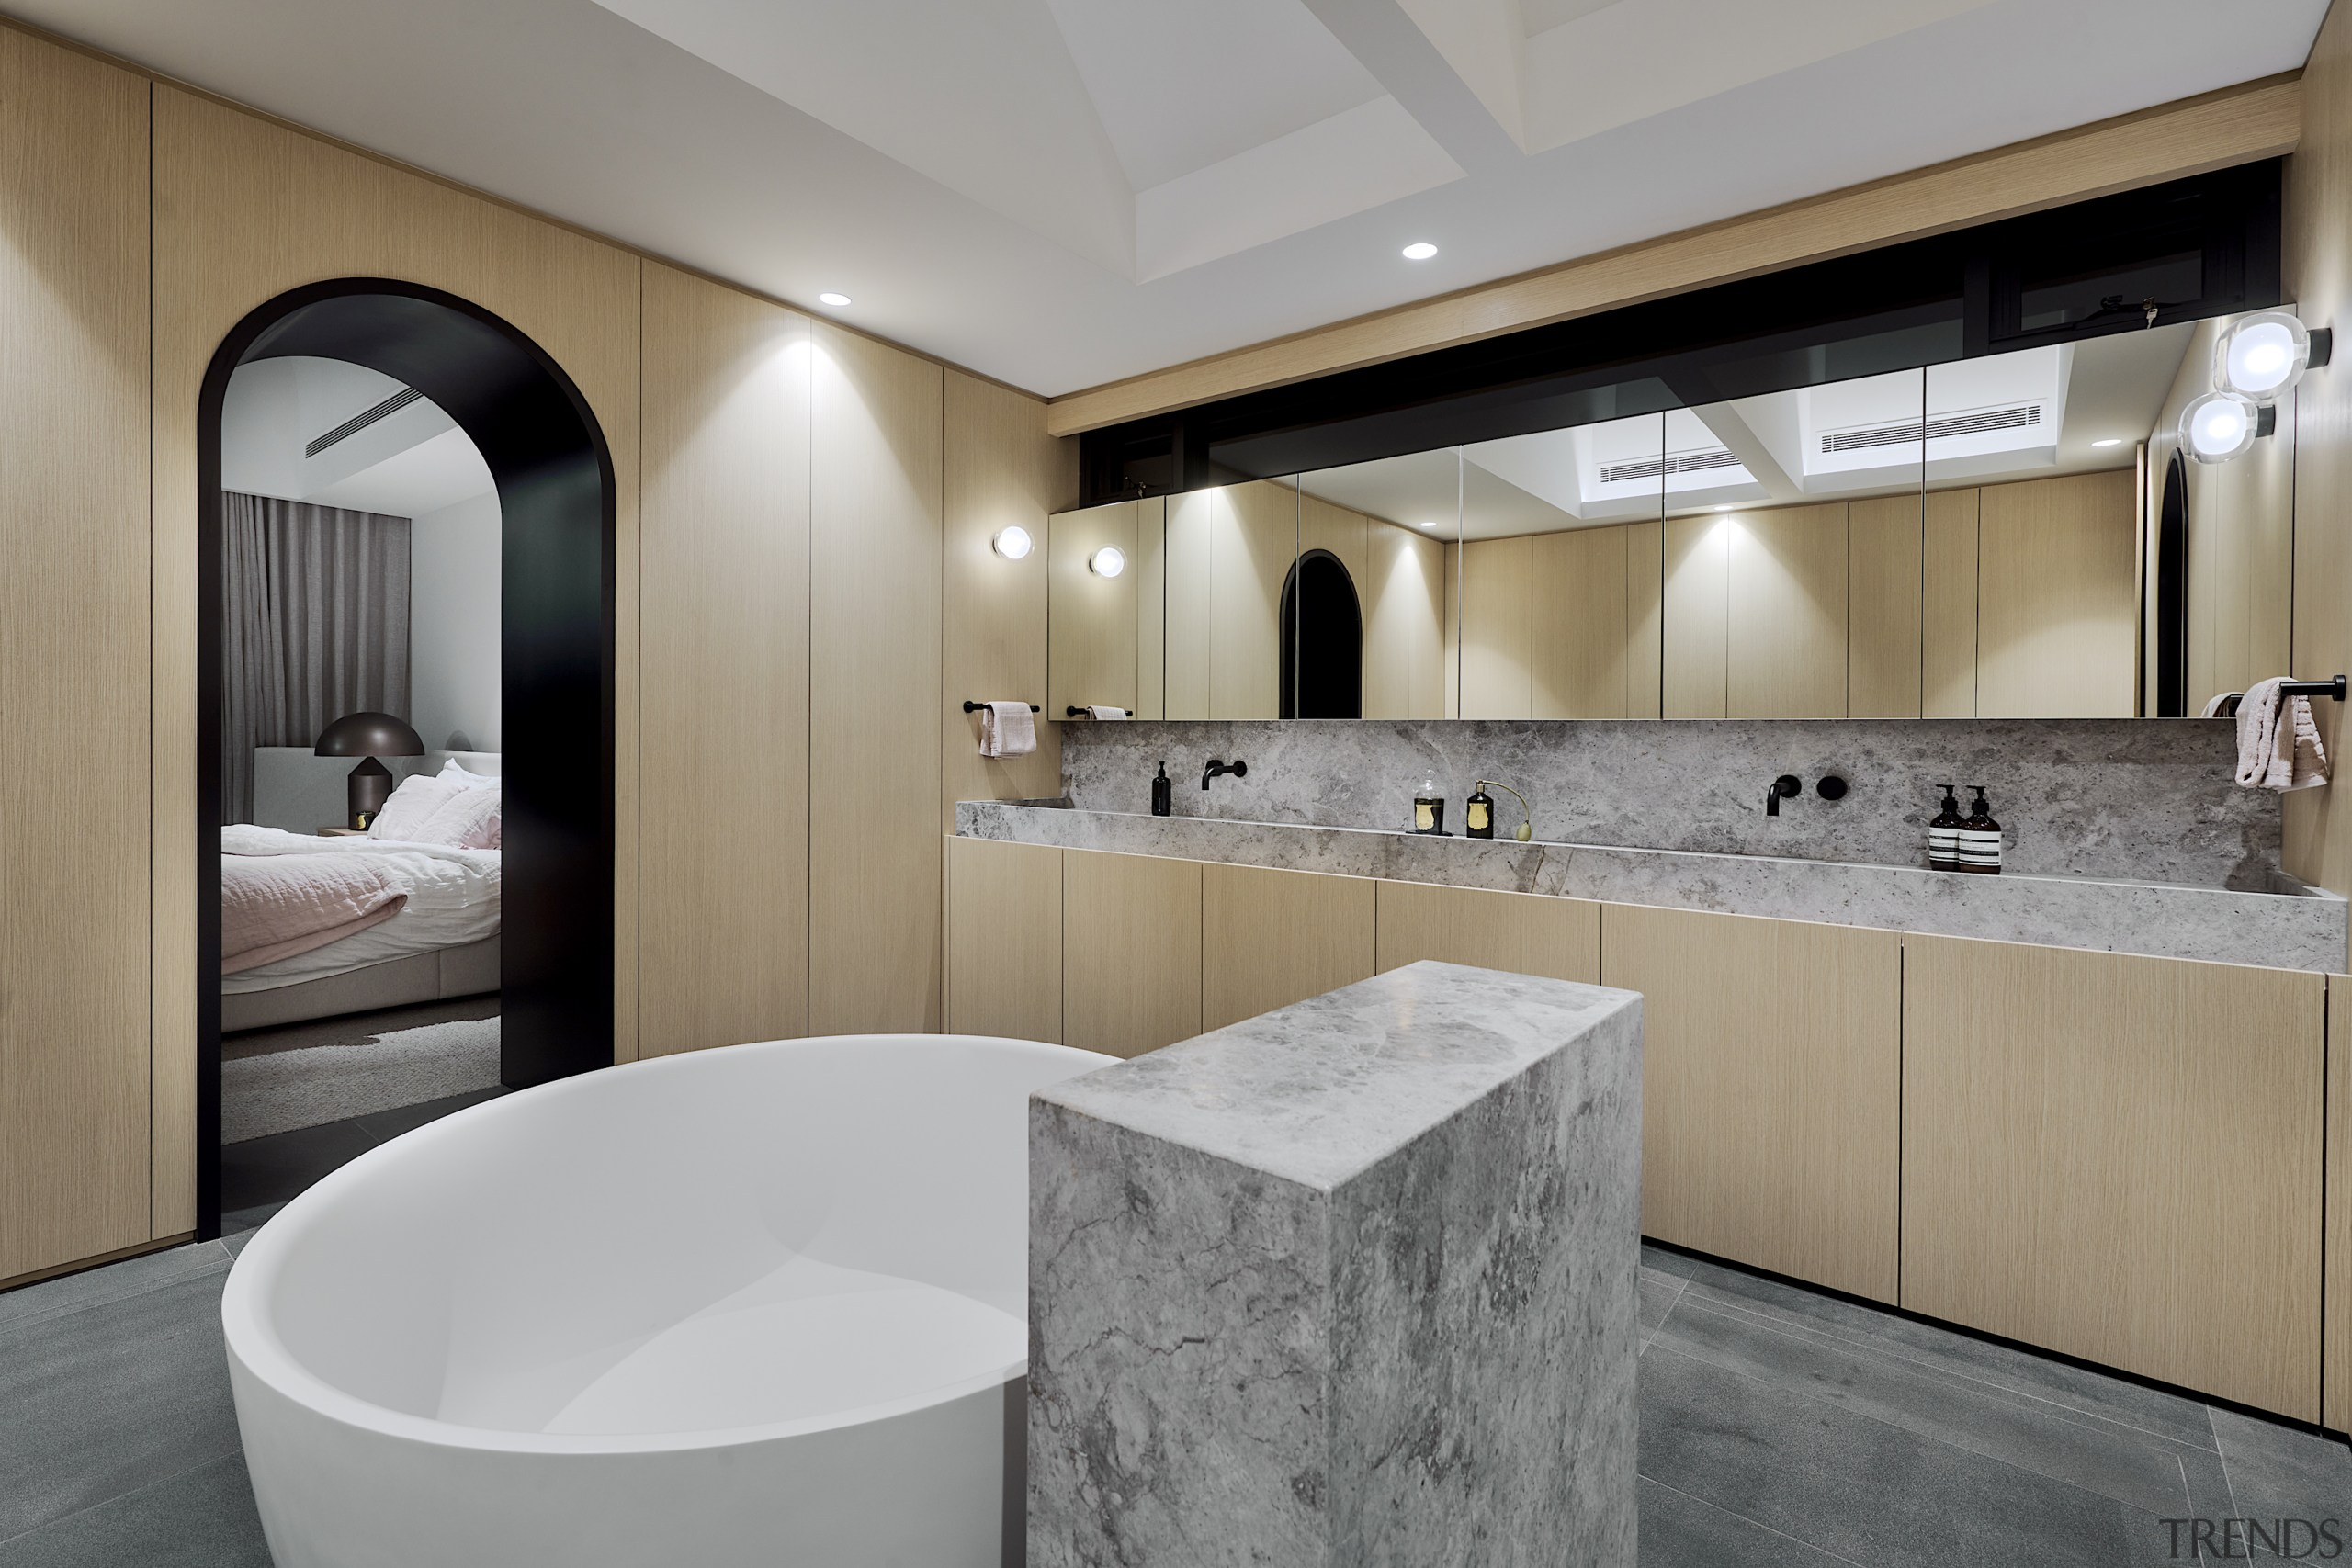 The blonde wood cabinetry and natural stone elements